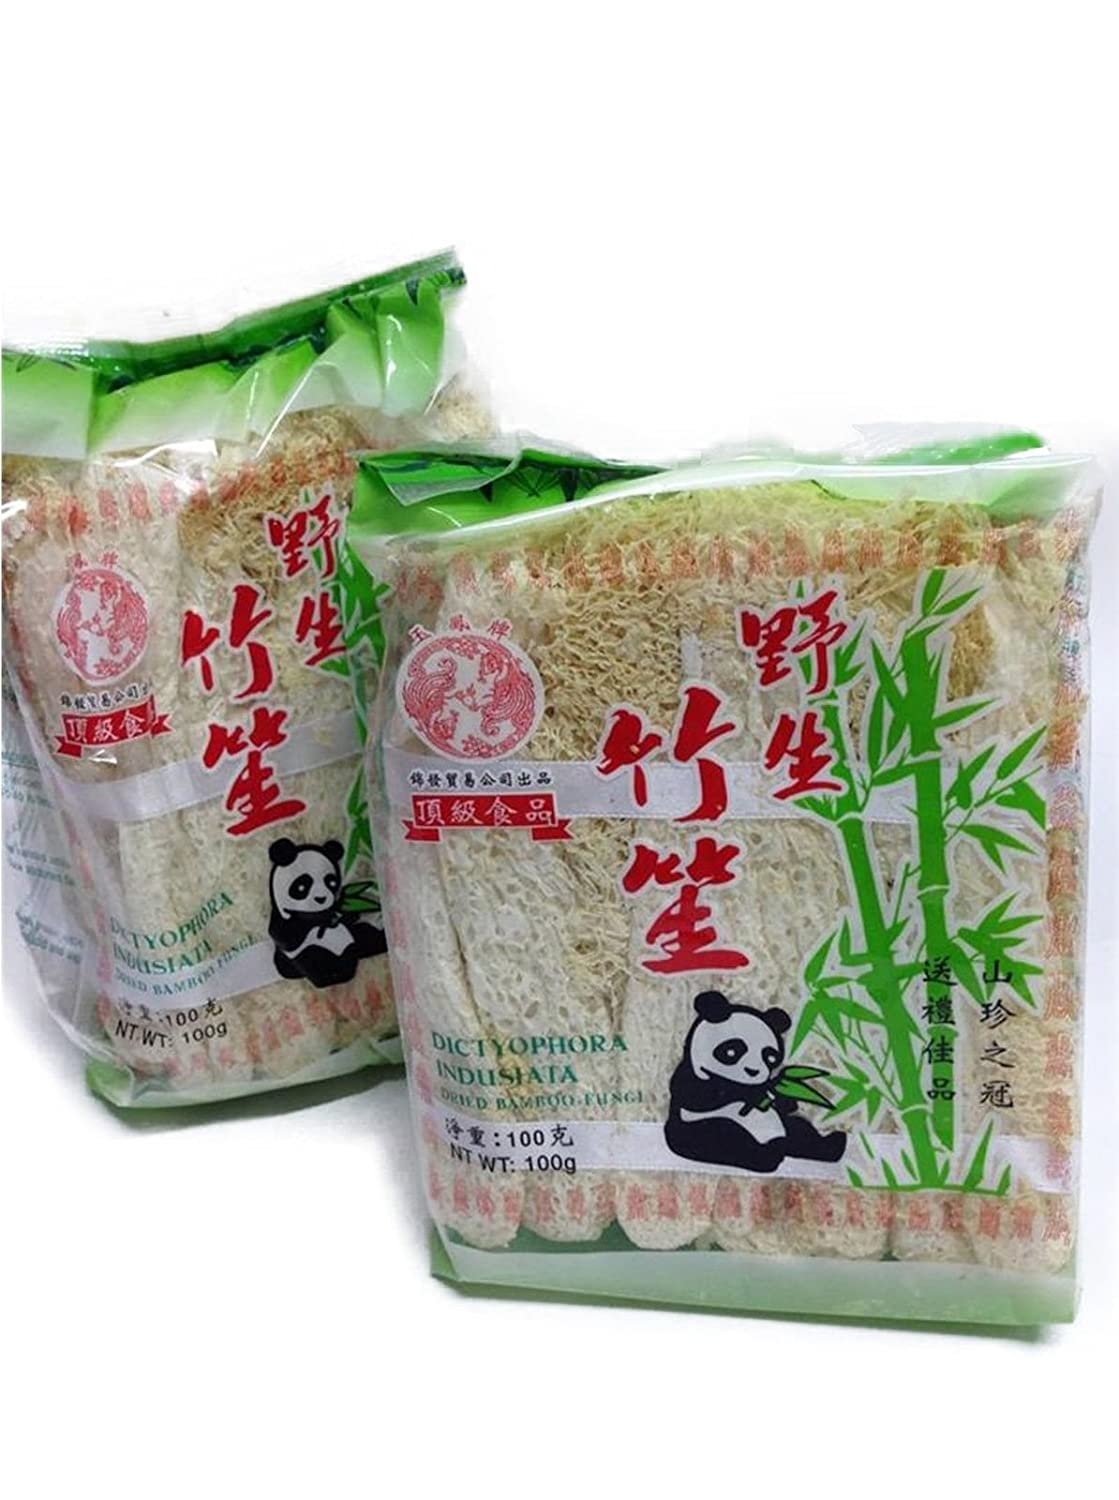 China Good Food Selected Natural Long net stinkhorn Dried Bamboo Fungi 竹笙 Free Worldwide AIRMAIL